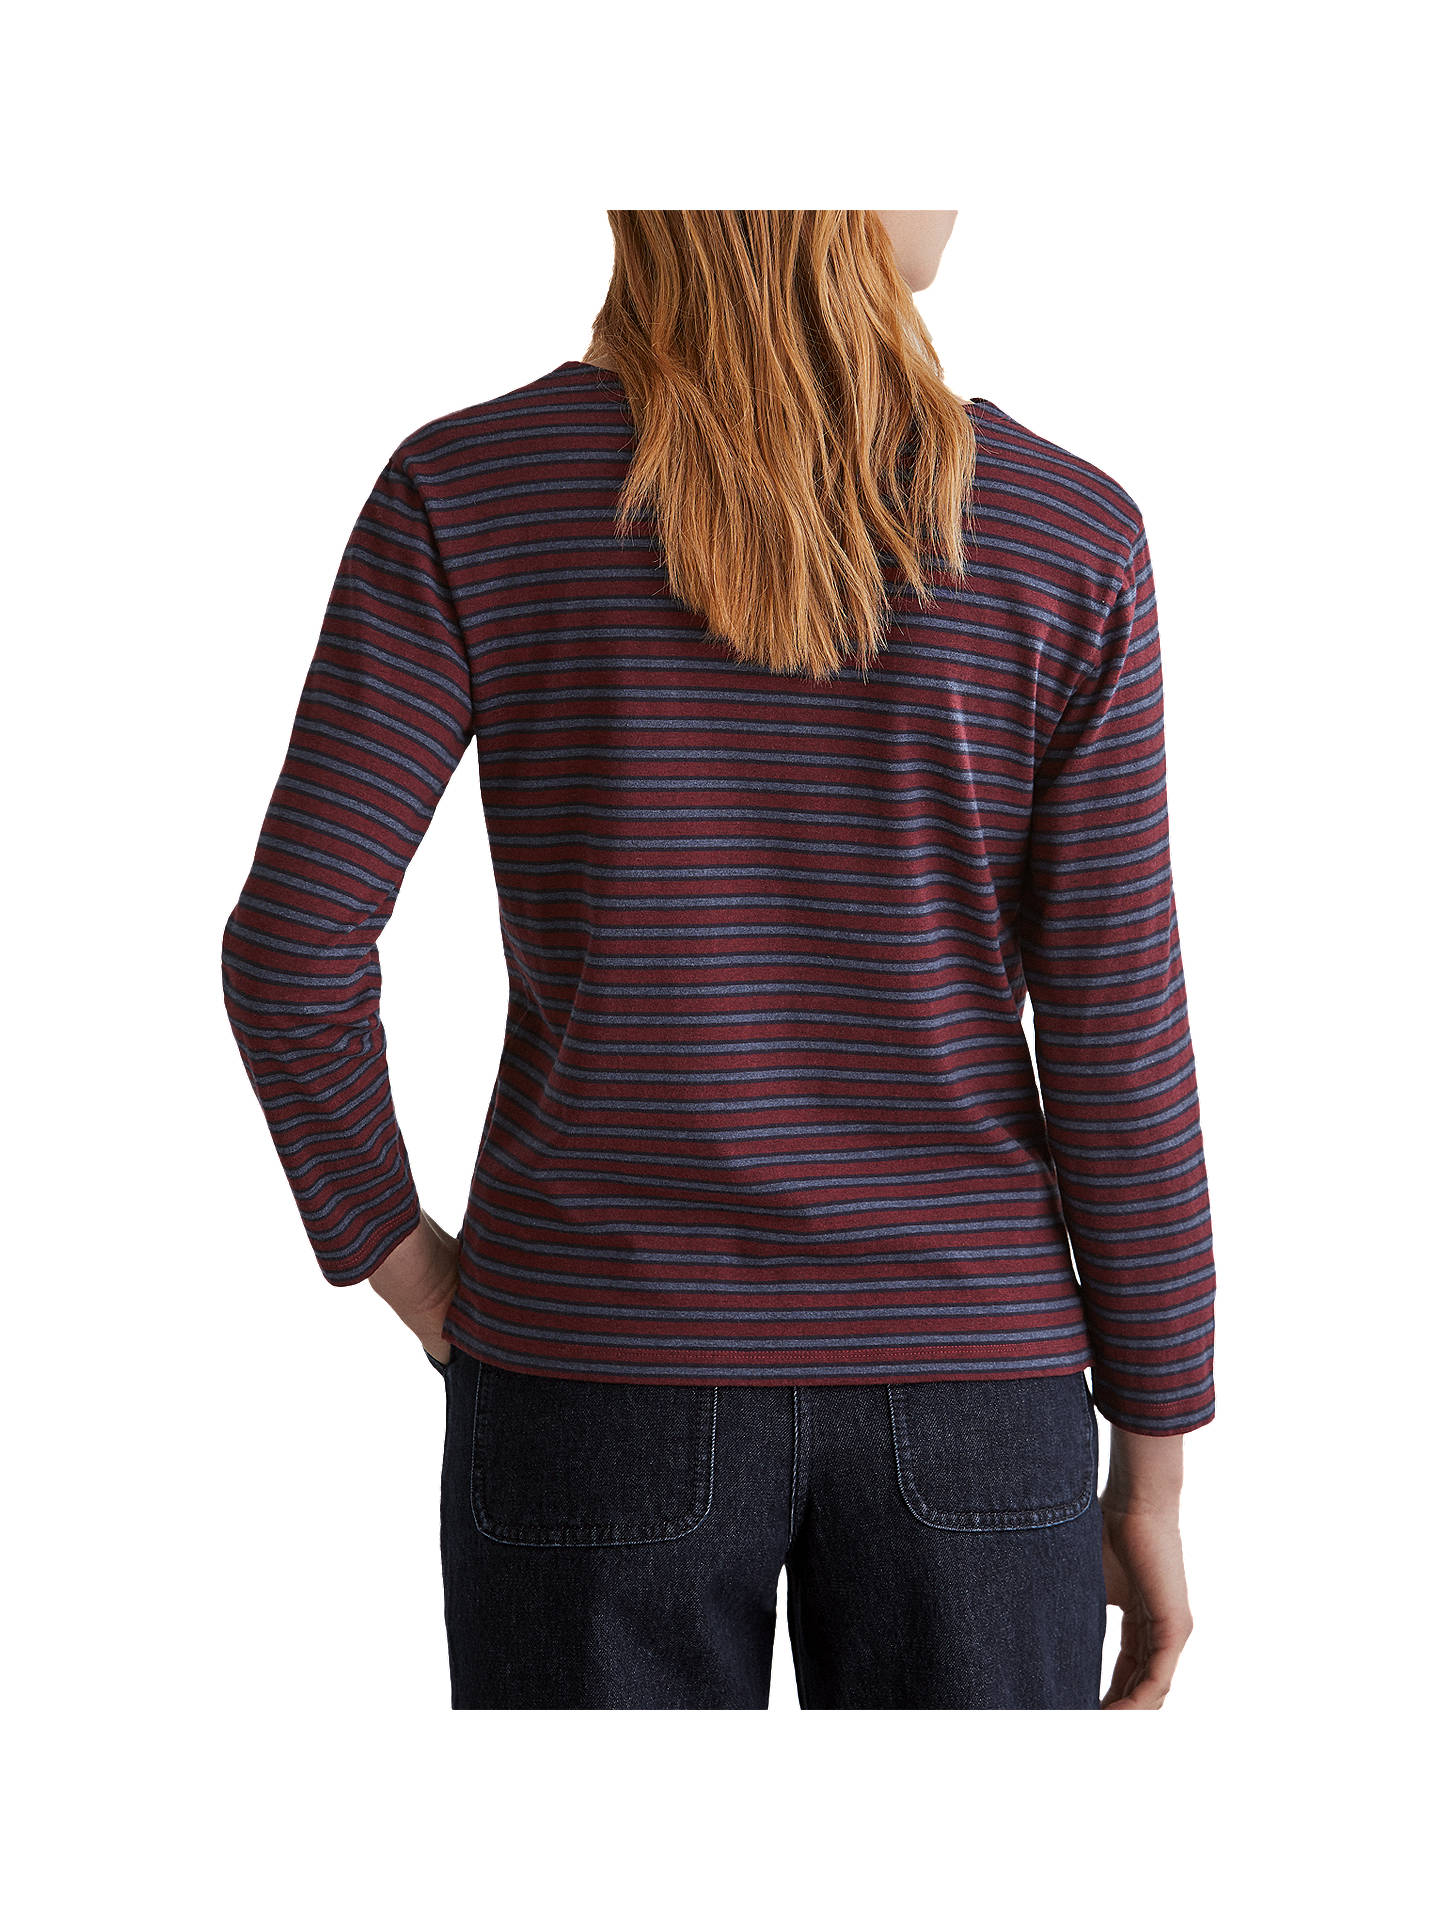 BuyToast Breton Stripe Cotton Top, Carnelian Red/Navy, XS Online at johnlewis.com